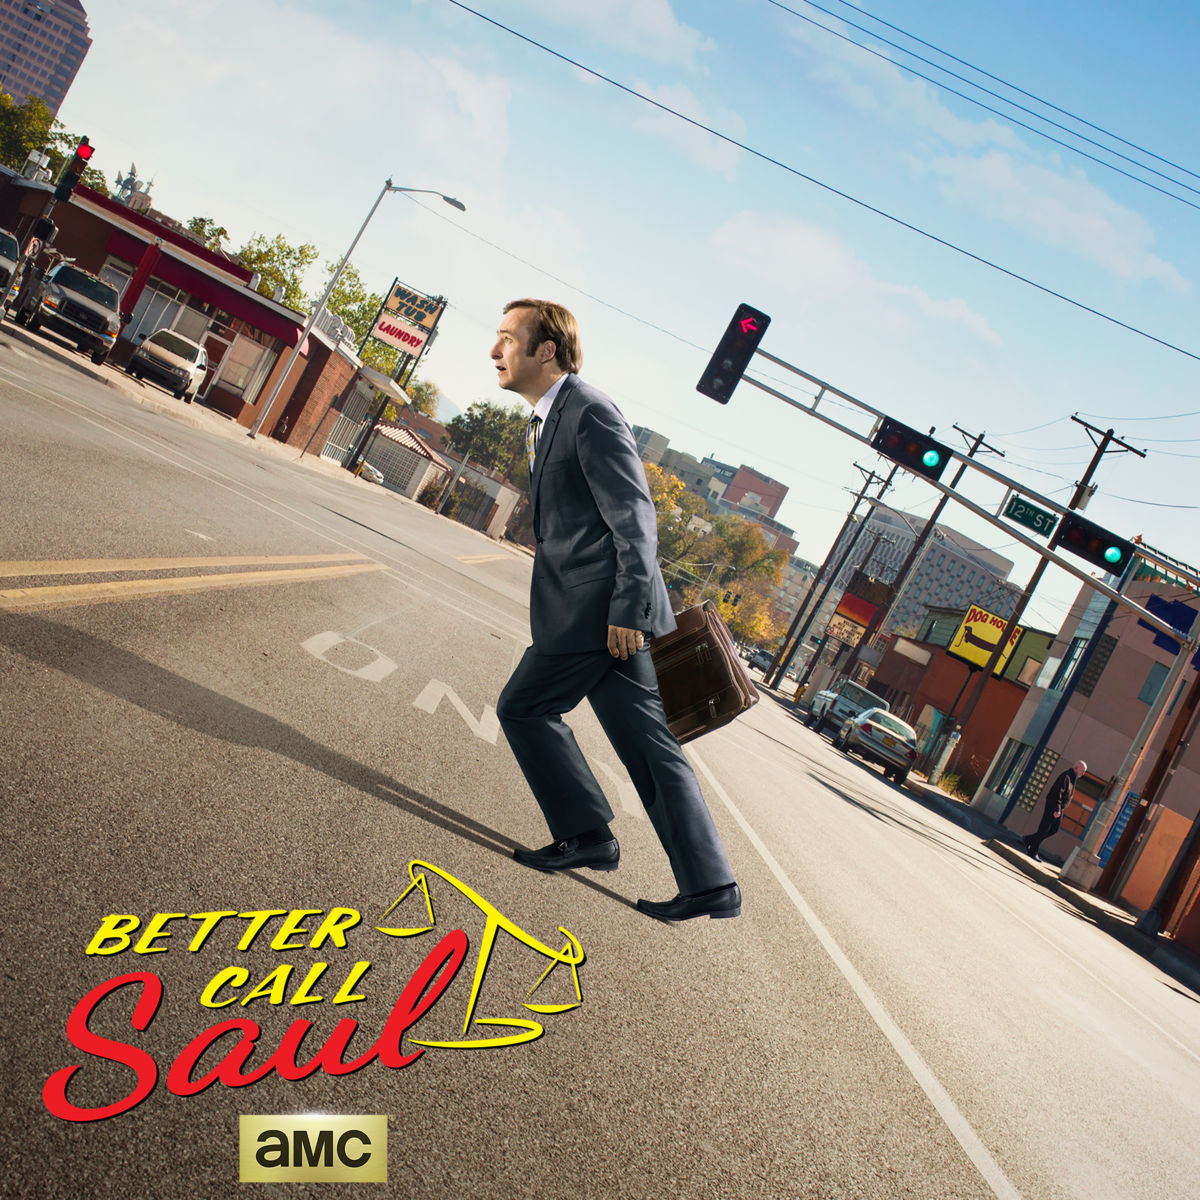 Better Call Saul, Season 2